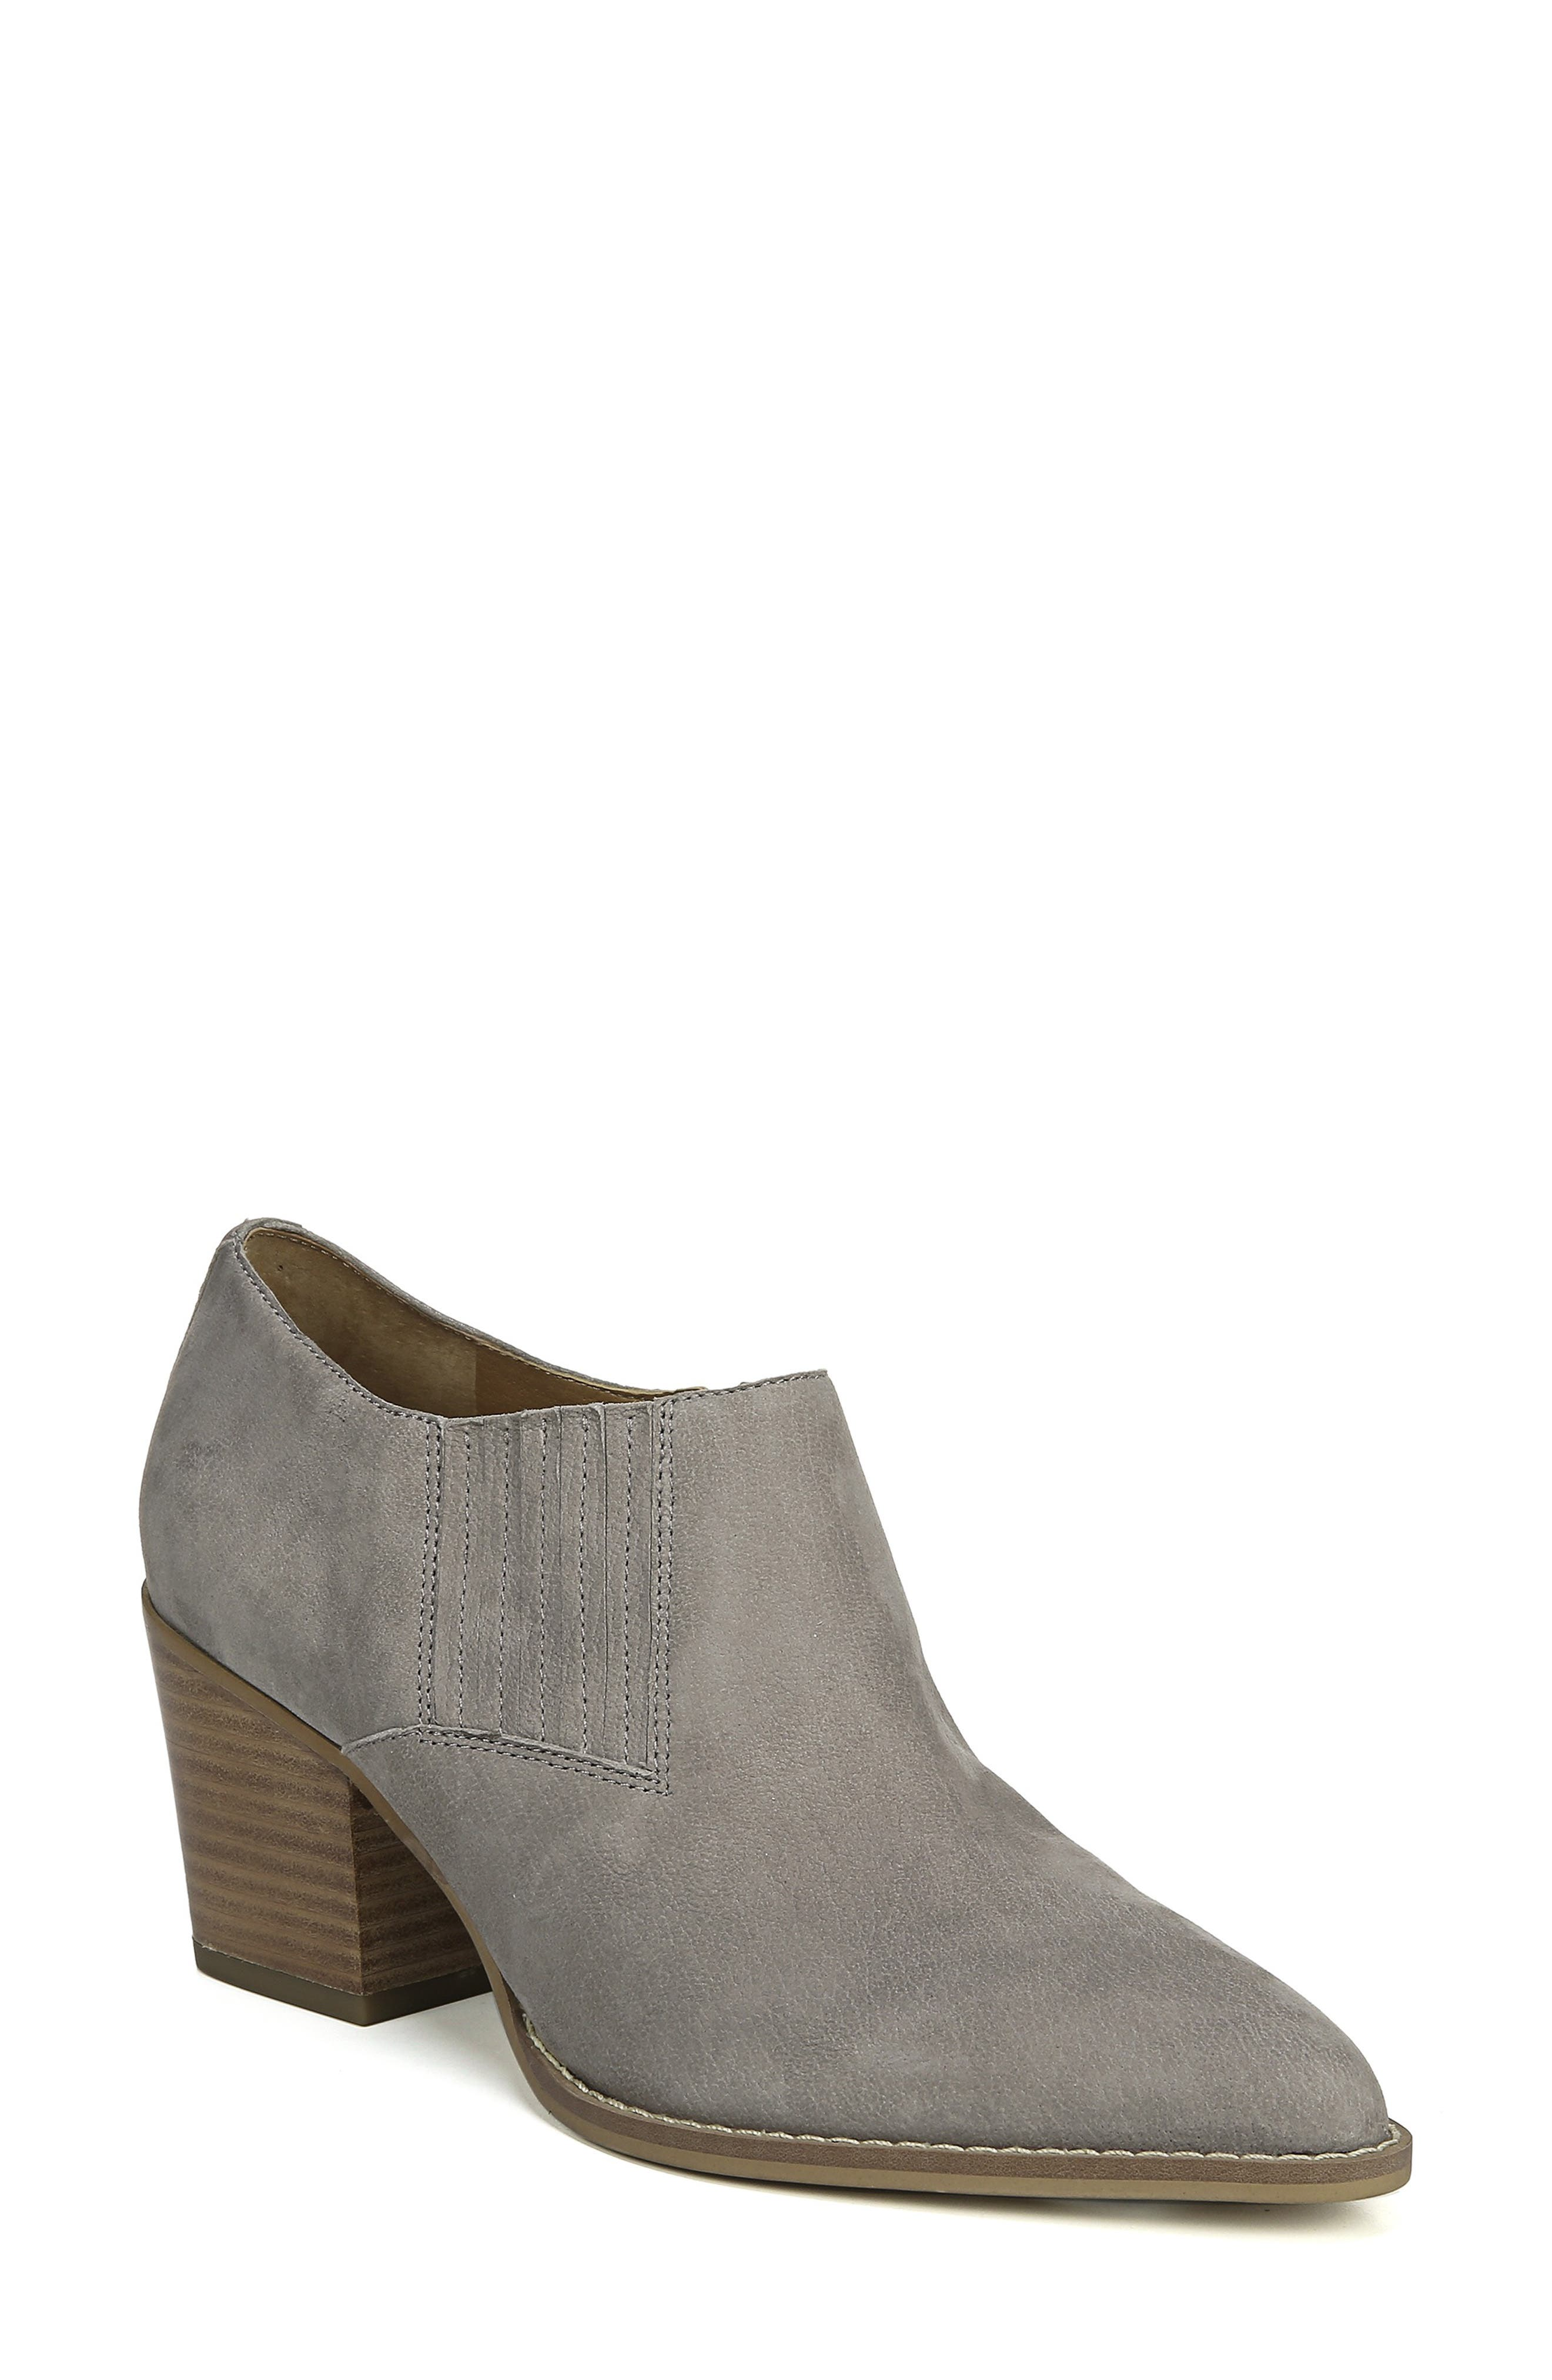 Camella Bootie,                             Main thumbnail 1, color,                             GREYSTONE NUBUCK LEATHER